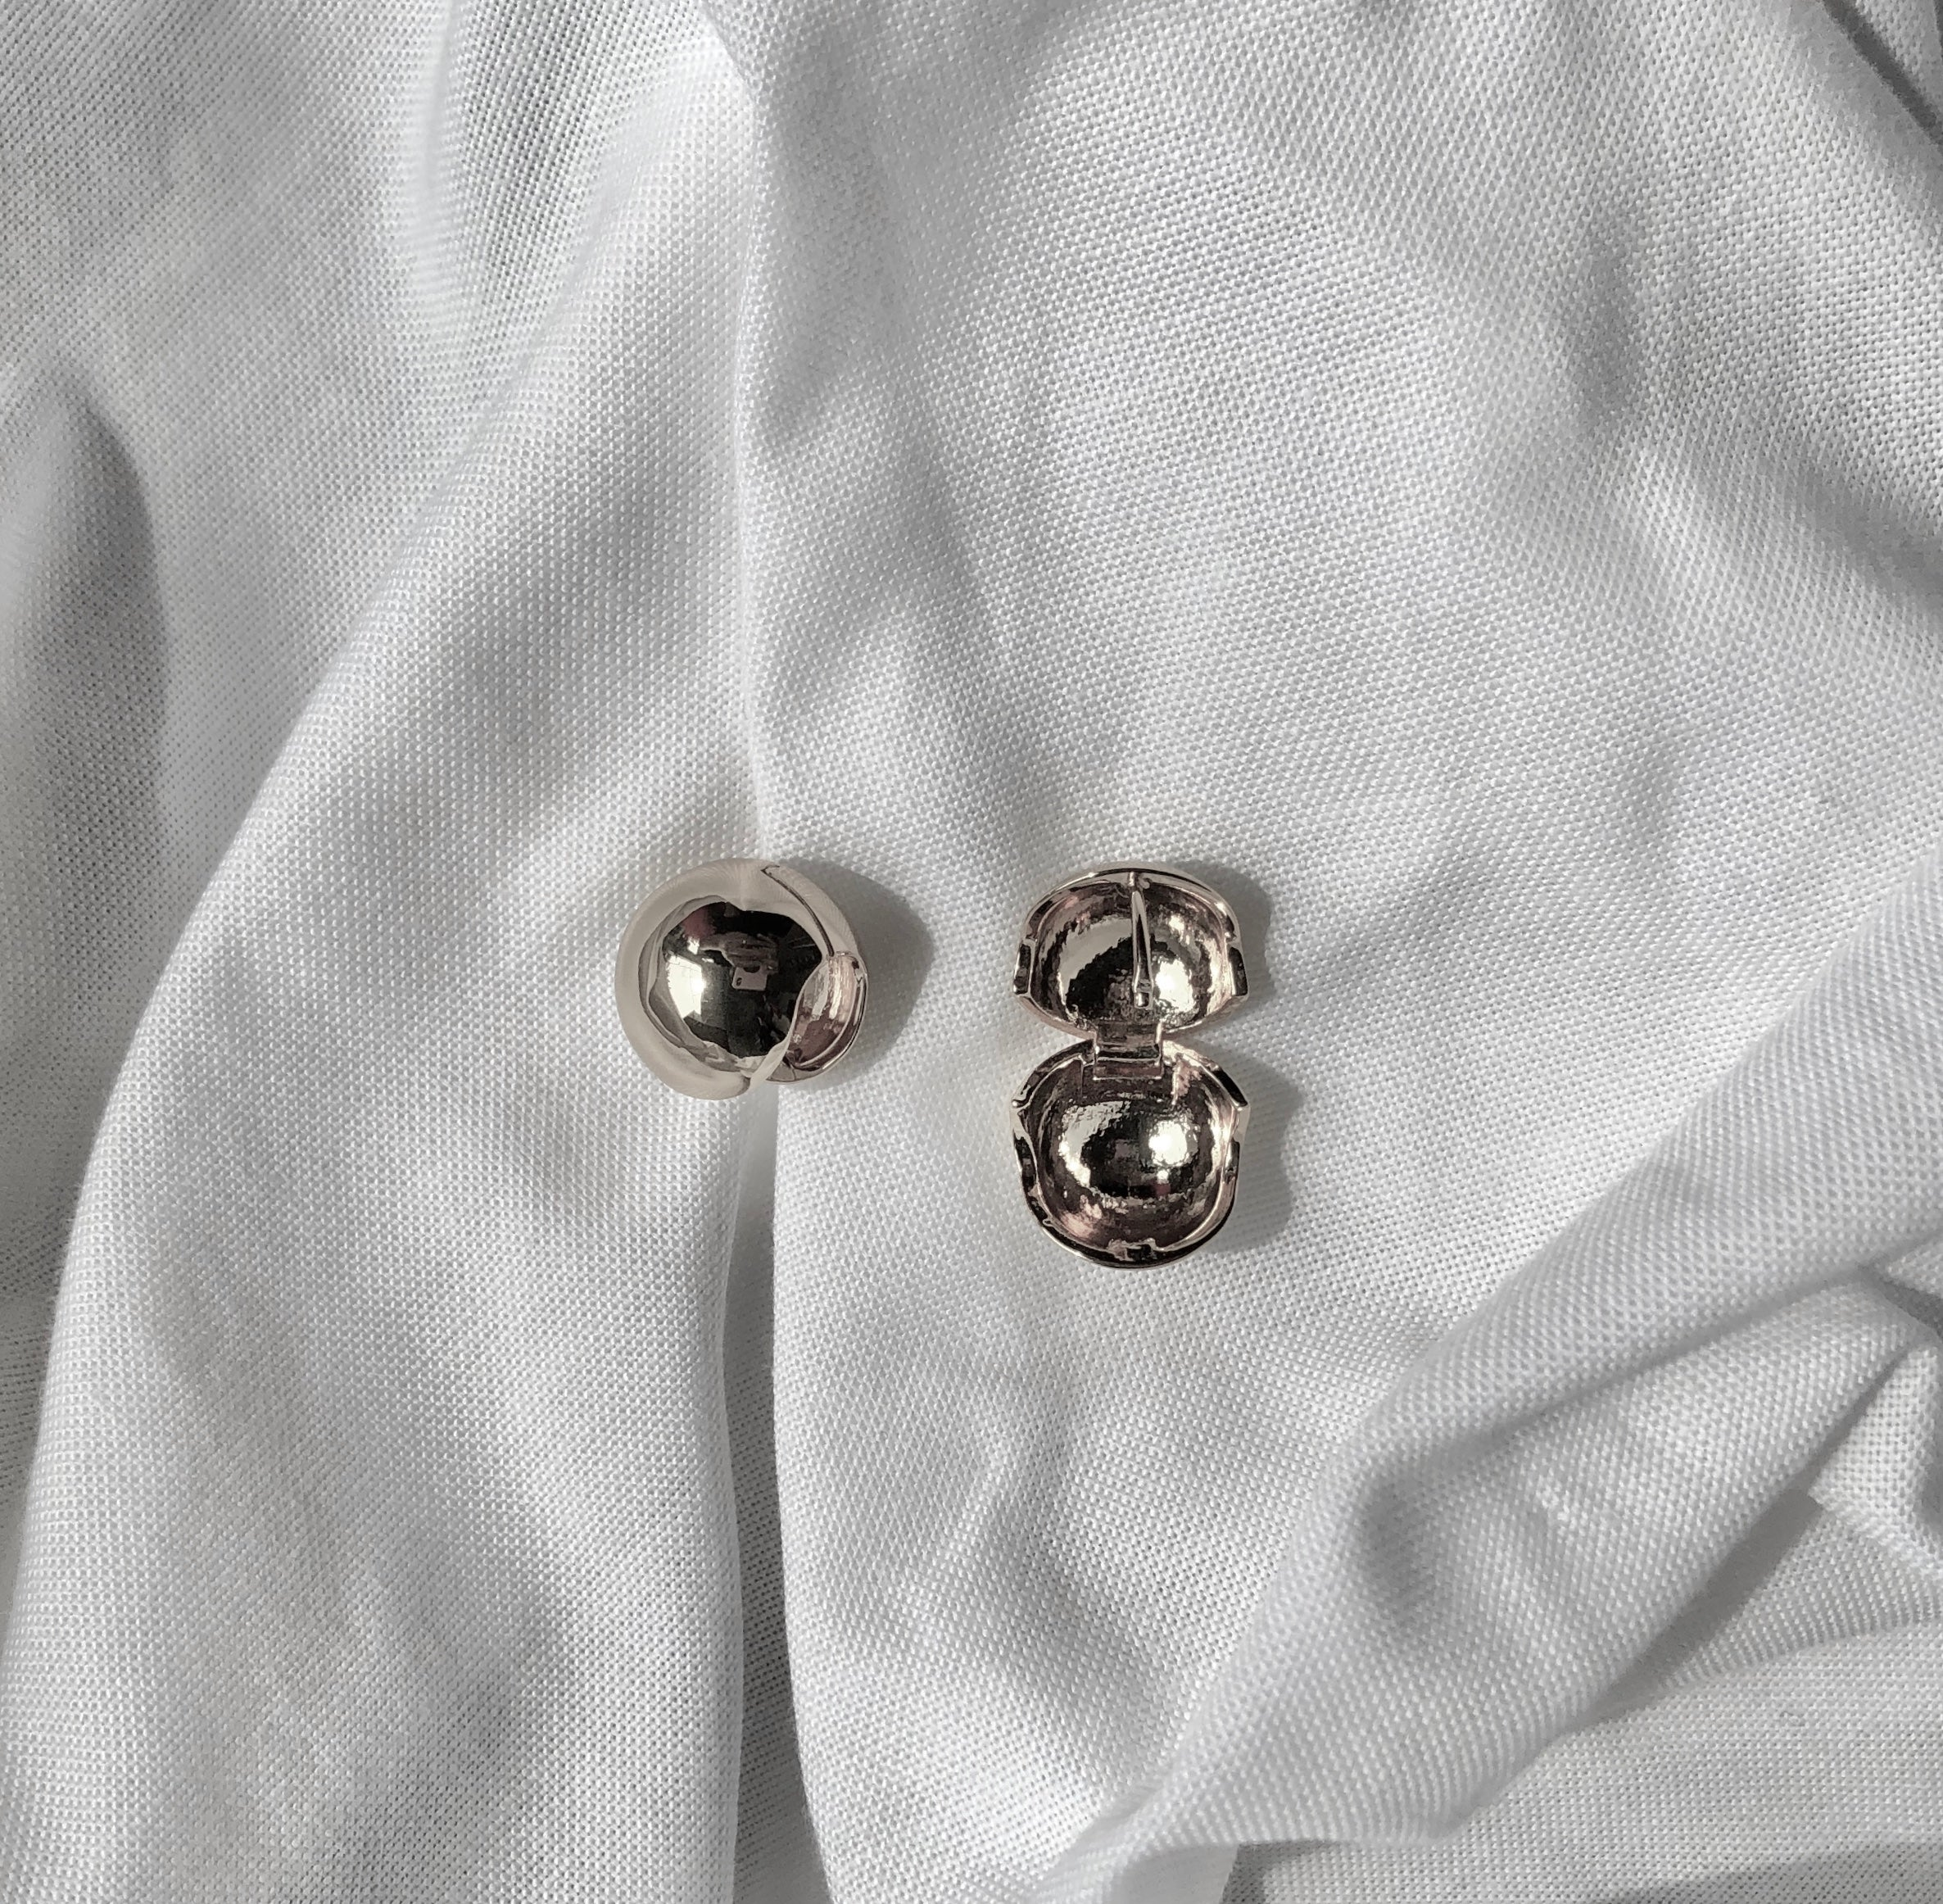 Ball Earrings in 925 Silver by Veronique